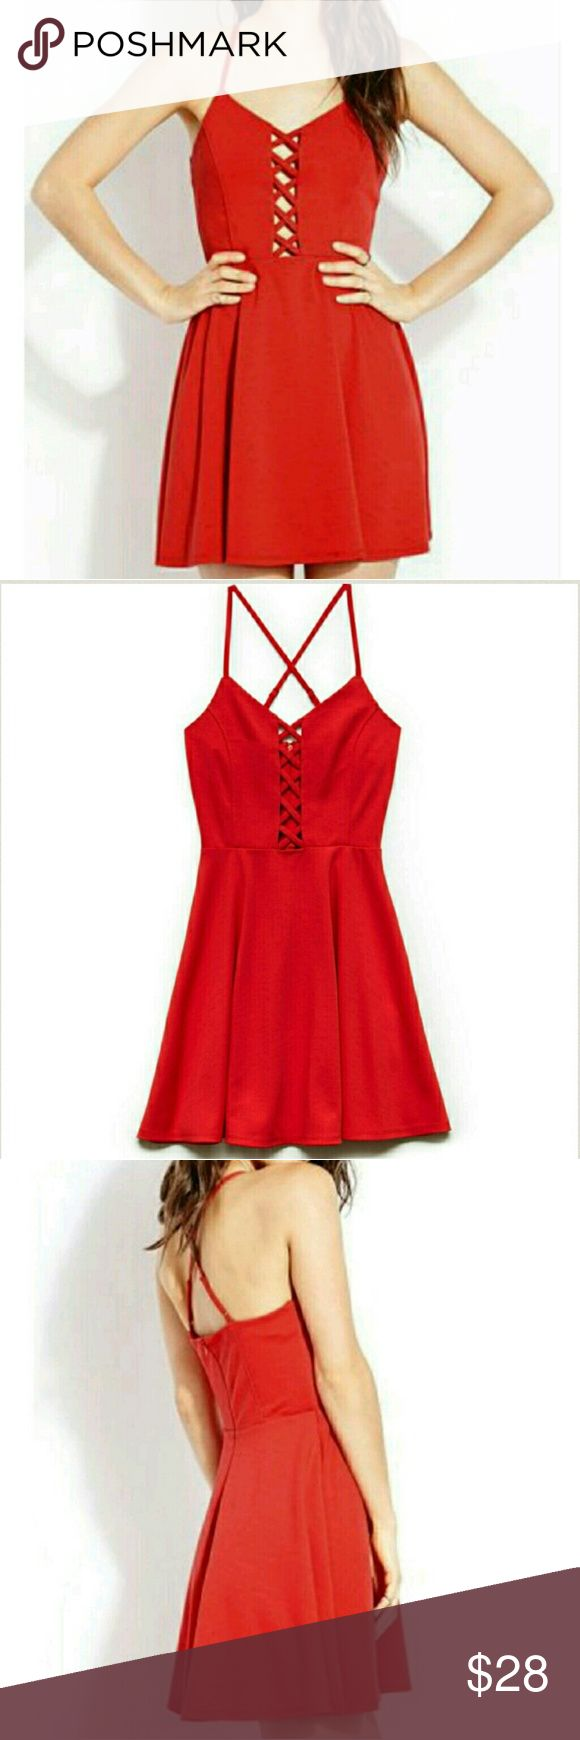 New FOREVER 21 Medium red dress New FOREVER 21 Medium red dress Red Crisscross Fit And Flare Dress. Brand new without tags. Forever 21 Dresses